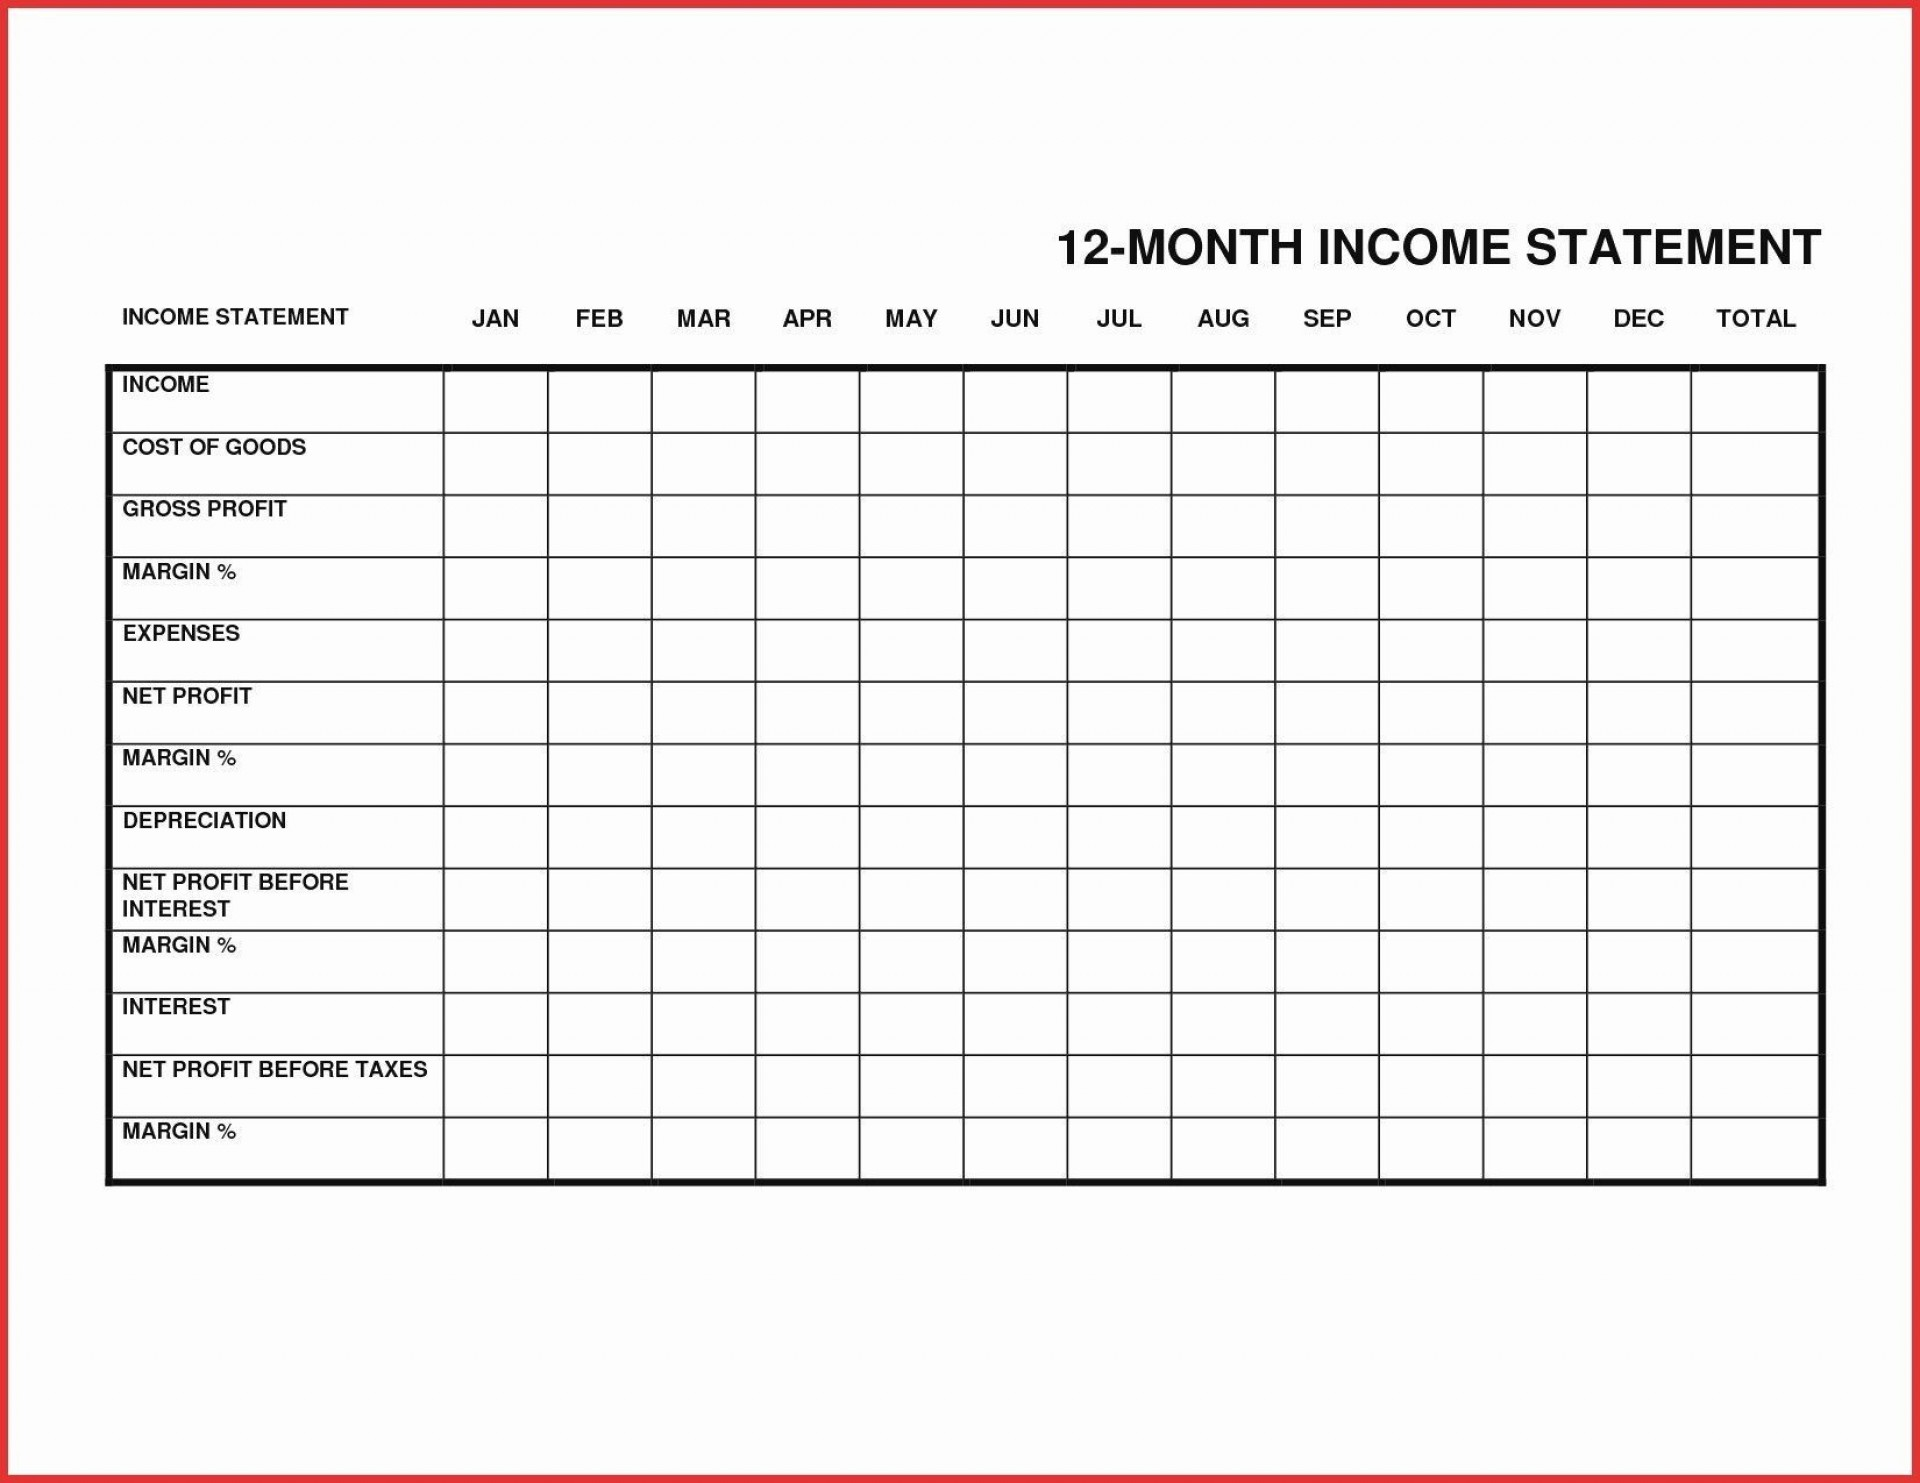 000 Rare Monthly Income Statement Format Excel Free Download Image 1920